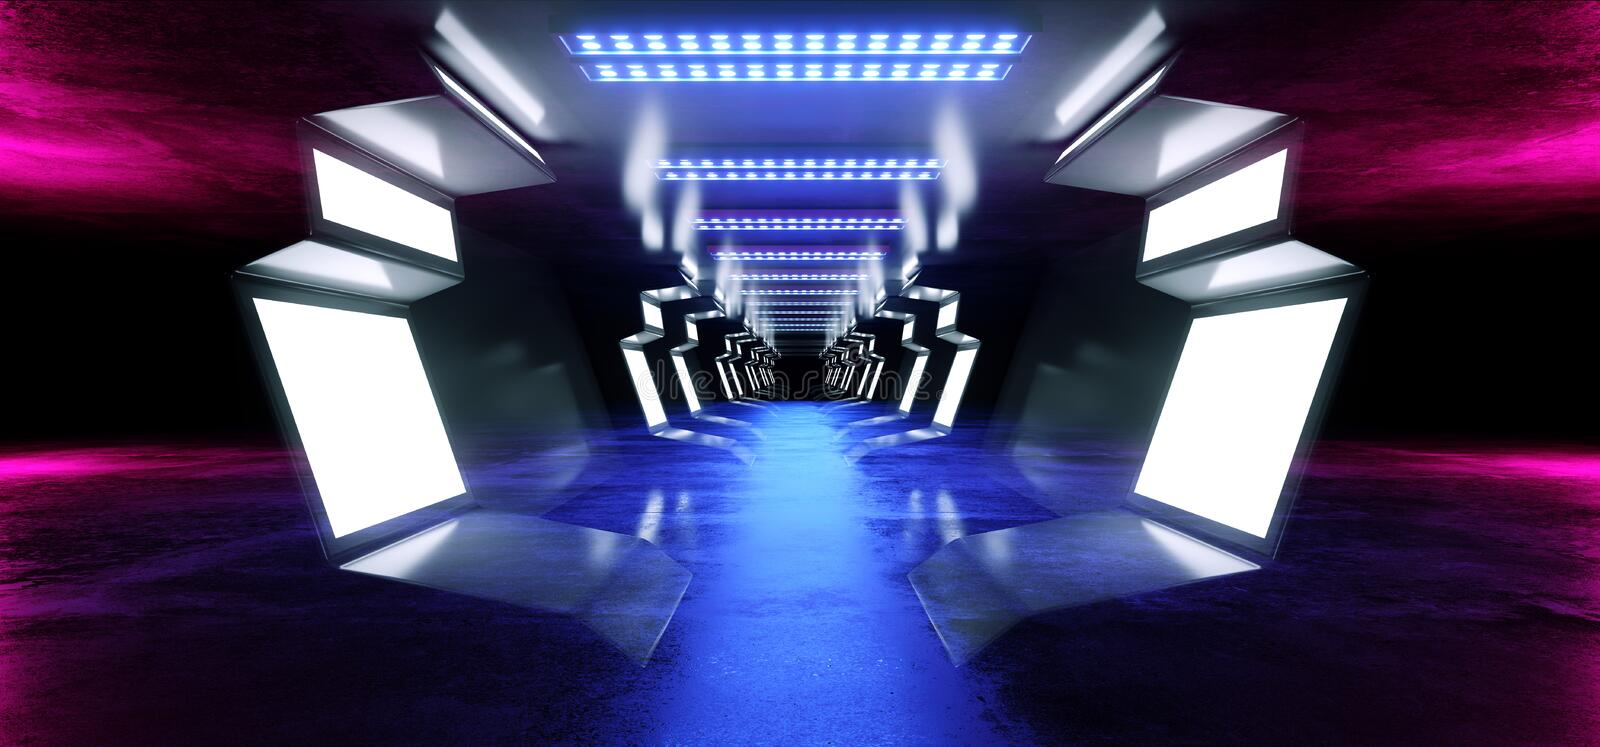 Neon Lines Futuristic Purple  Sci Fi Spaceship Glowing White Blue Metal Reflective Concrete Floor Corridor Tunnel Hallway Entrance. Gate Garage Underground royalty free illustration